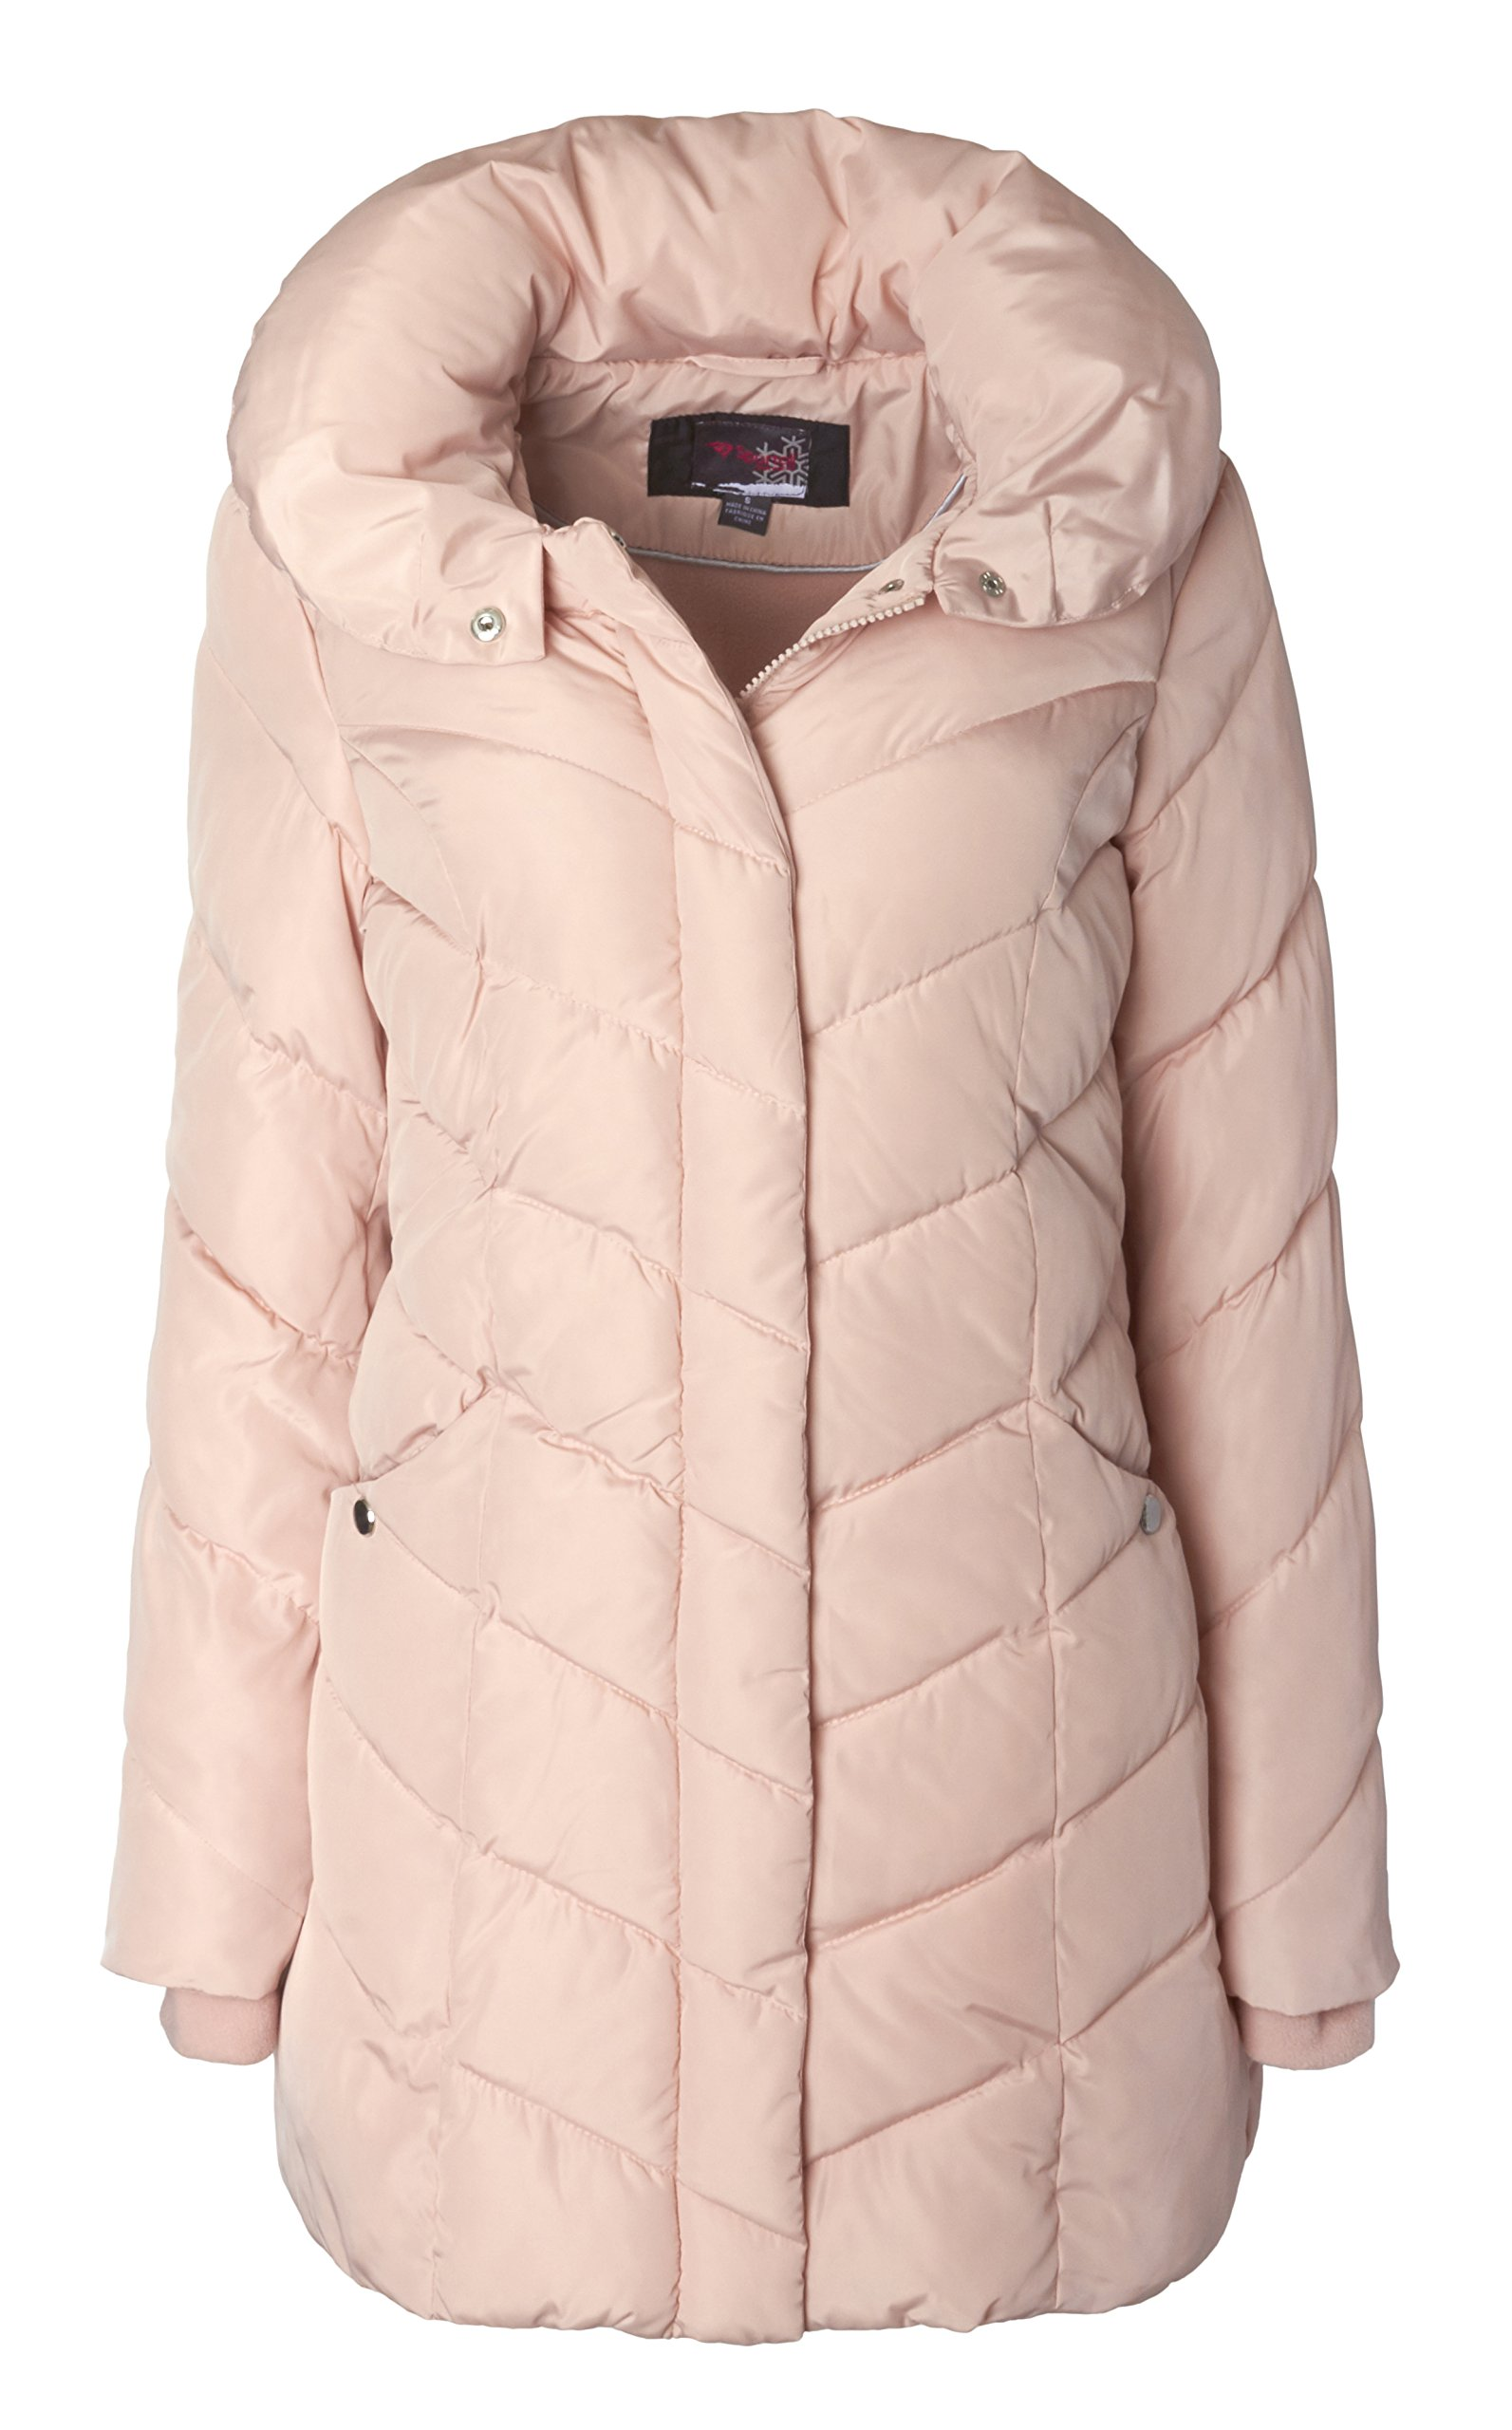 Sportoli Womens Packable Winter Chevron Quilted Fleece Lined Puffer Coat with Hood - Blush (Size 2X)